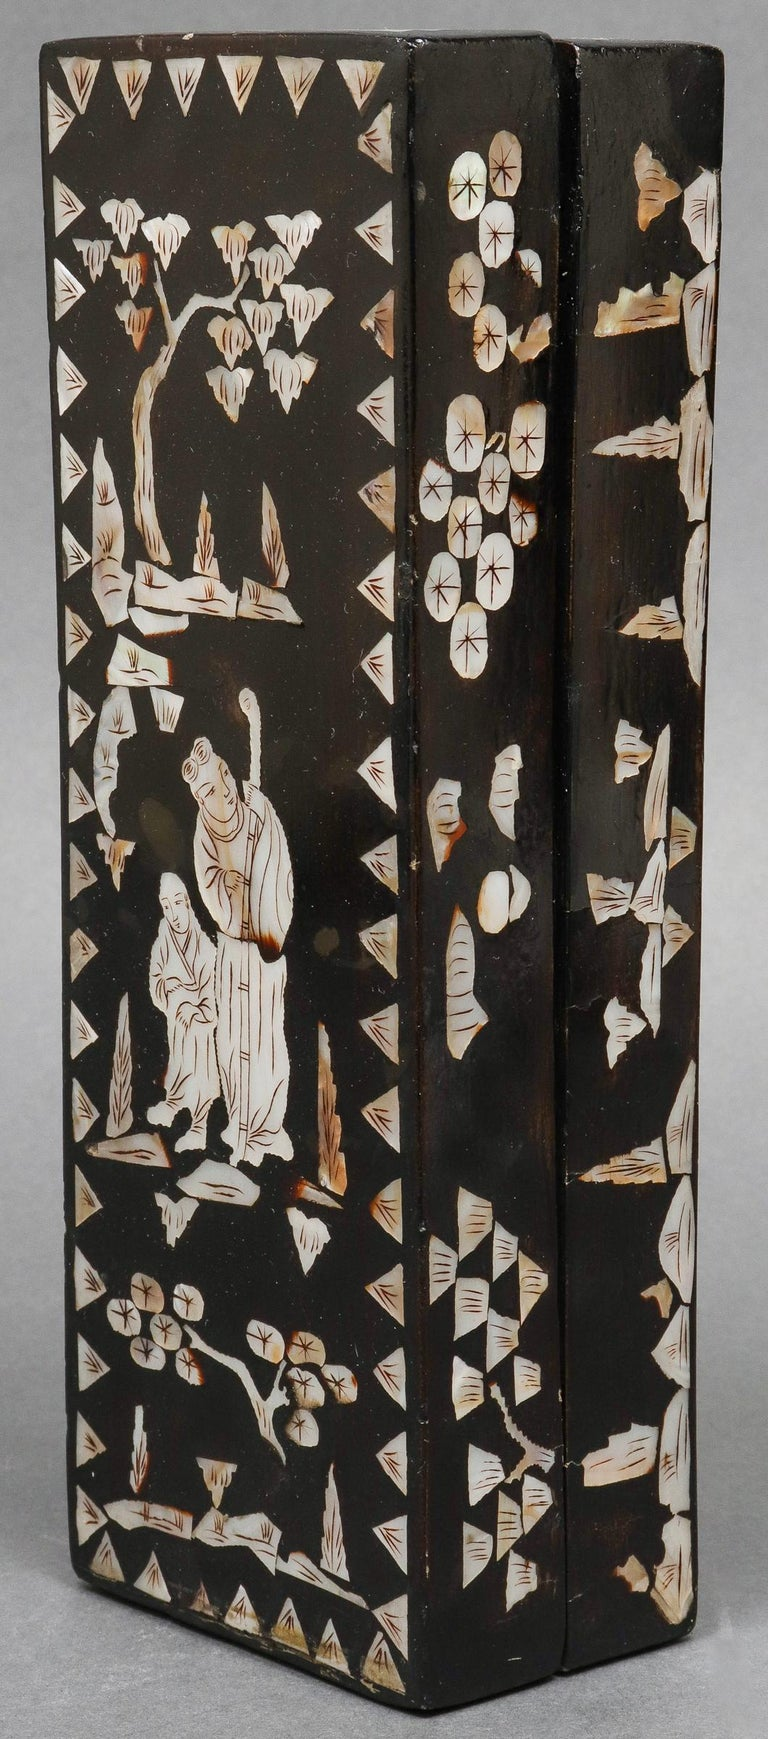 Chinese mother of pearl inlaid lacquered long rectangular box, the cover depicting two figures or immortals with all-over landscape decoration, circa late 19th-early 20th century. 2.5